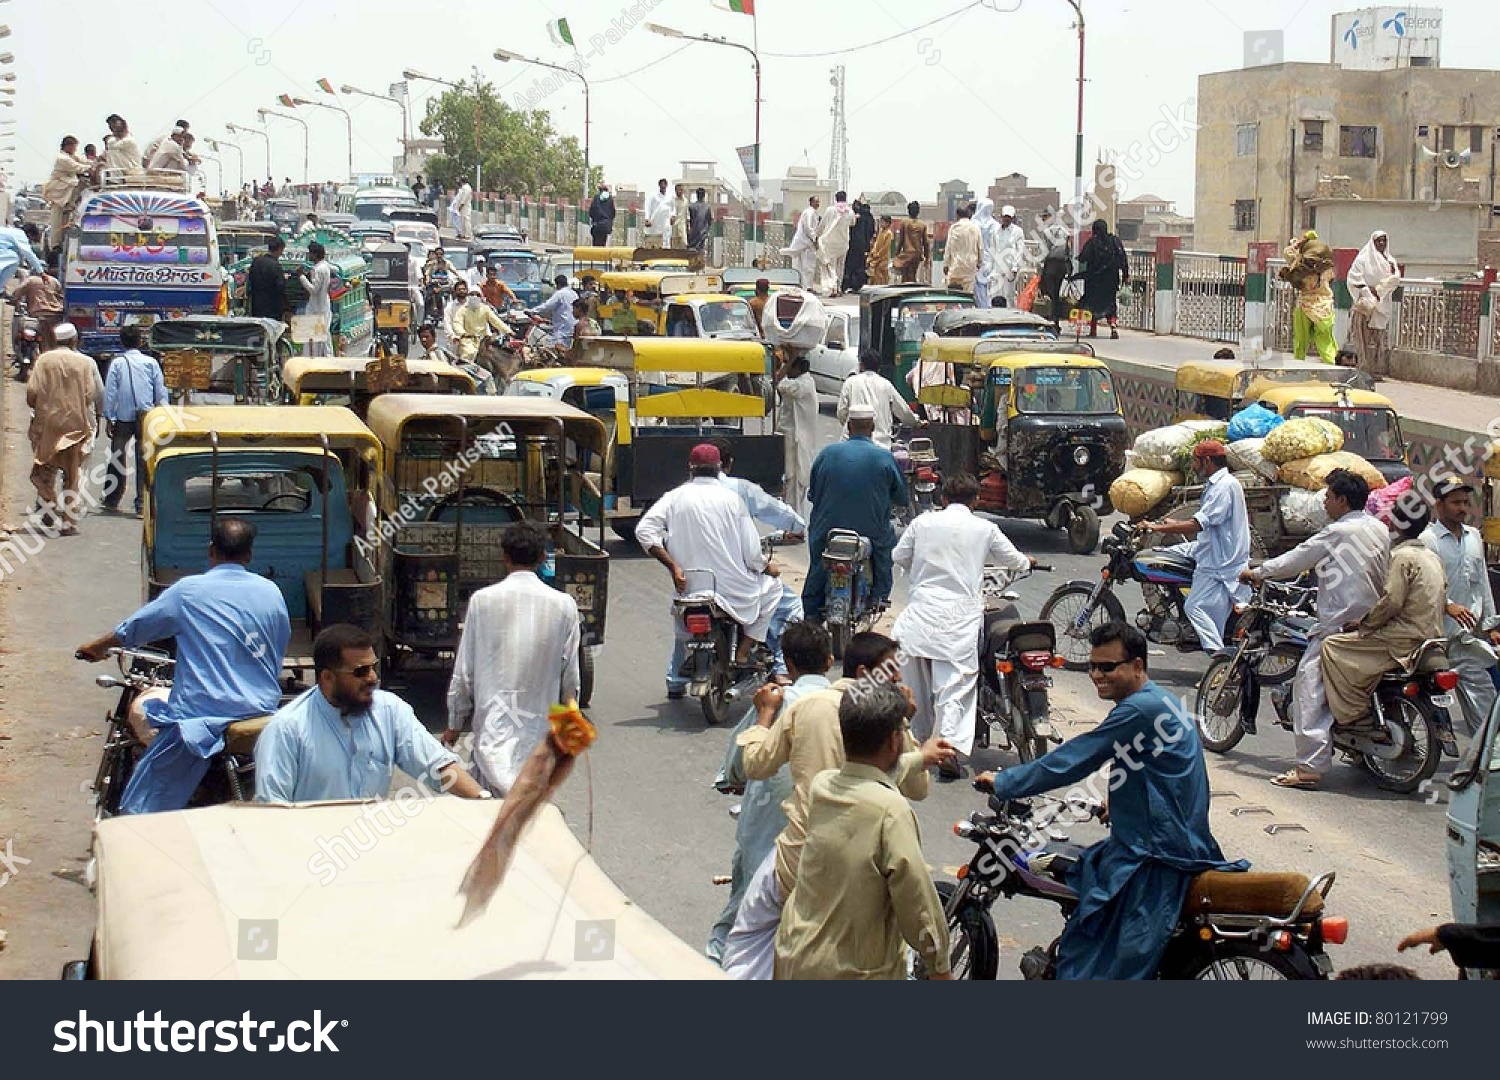 essay on traffic jam of hyderabad Finish few terrorism asean and un essays and go sleep yay essay on immigration issues travel writing essay exemple de dissertation en fran㨡is r㪤ig㪥 dar essay youtube, what is a research proposal for a research paper leni riefenstahl essay writer essayistic documentary heaven gender differences in aggression essays essay on favourite.